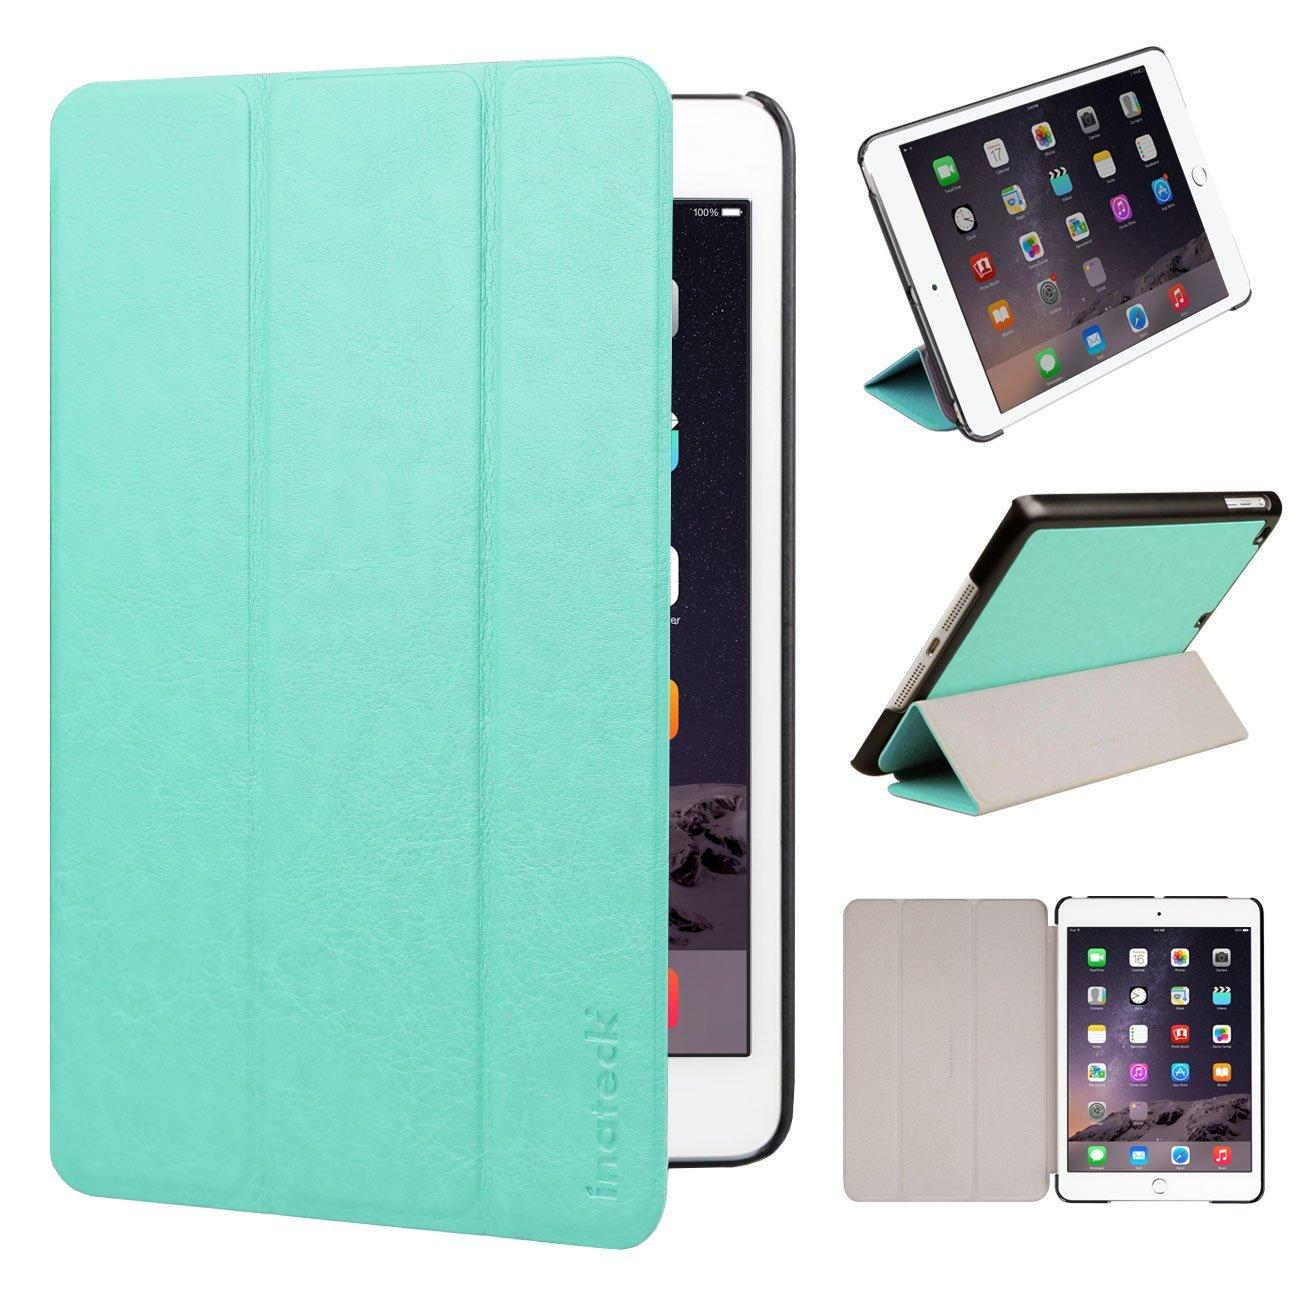 $3.99 Inateck iPad Mini Case - Ultra Slim Leather Case Smart Cover with Magnetic Auto Sleep Wake-up Function